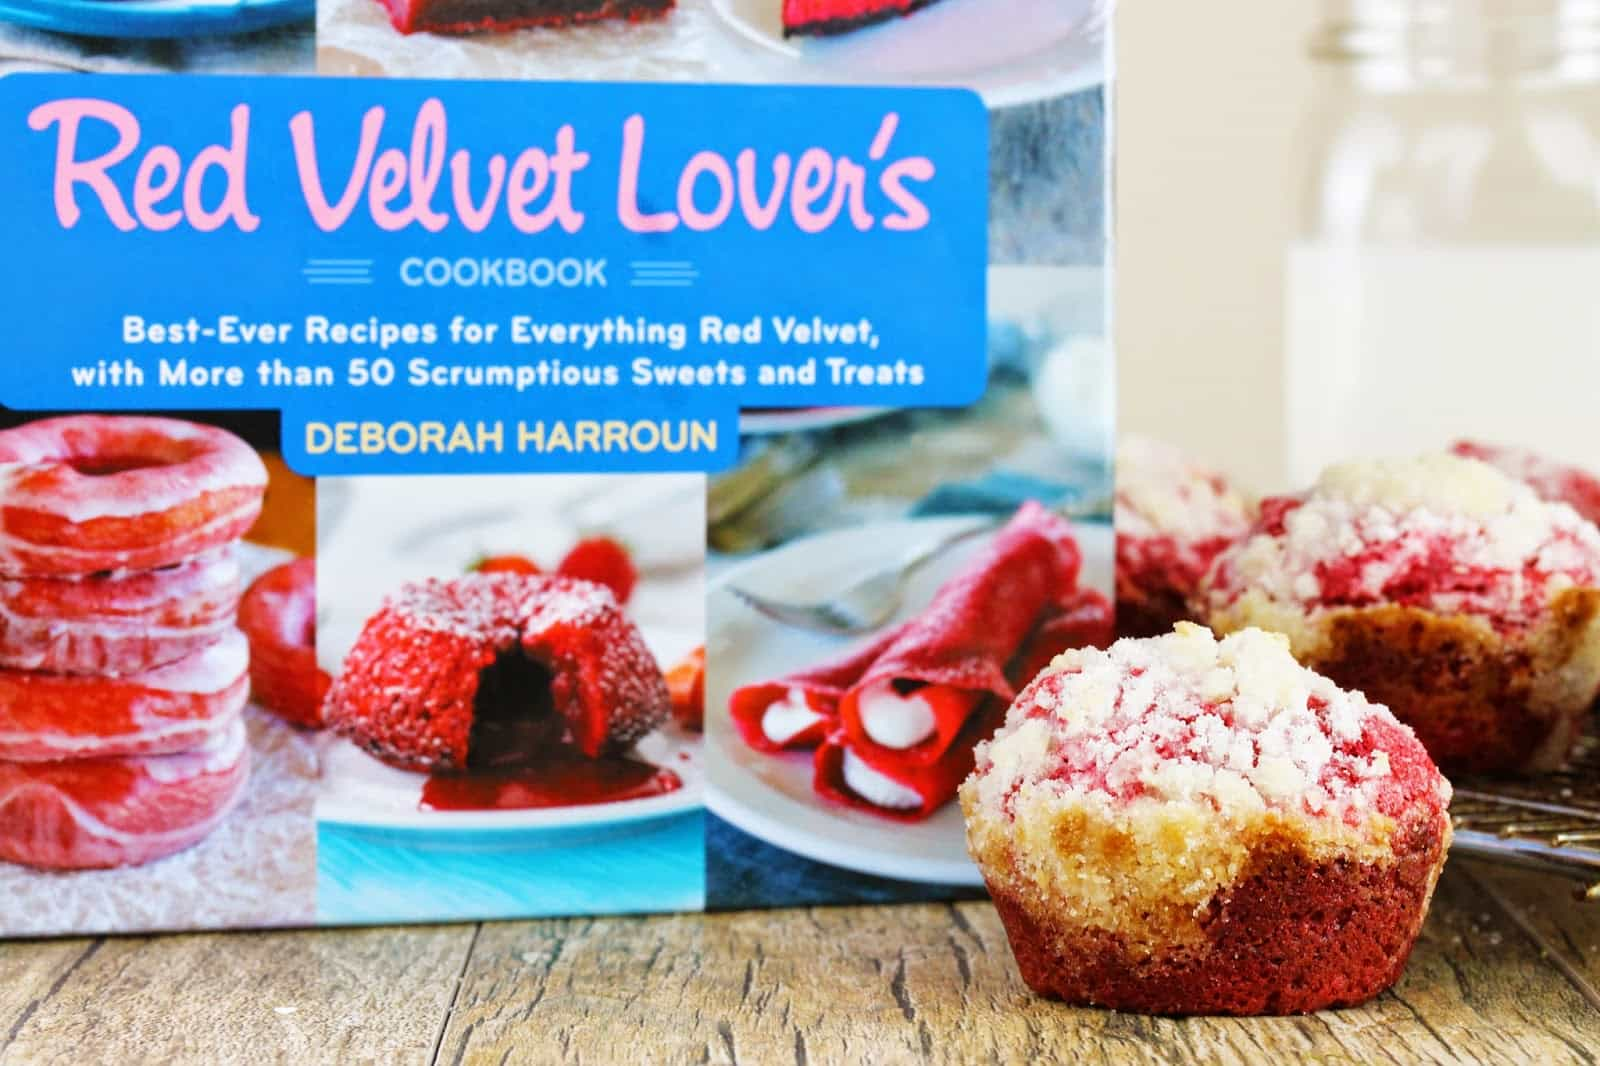 Red Velvet Lover's Cookbook: Best-Ever Recipes for Everything Red Velvet, with More than 50 Scrumptious Sweets and Treats, by Deborah Harroun